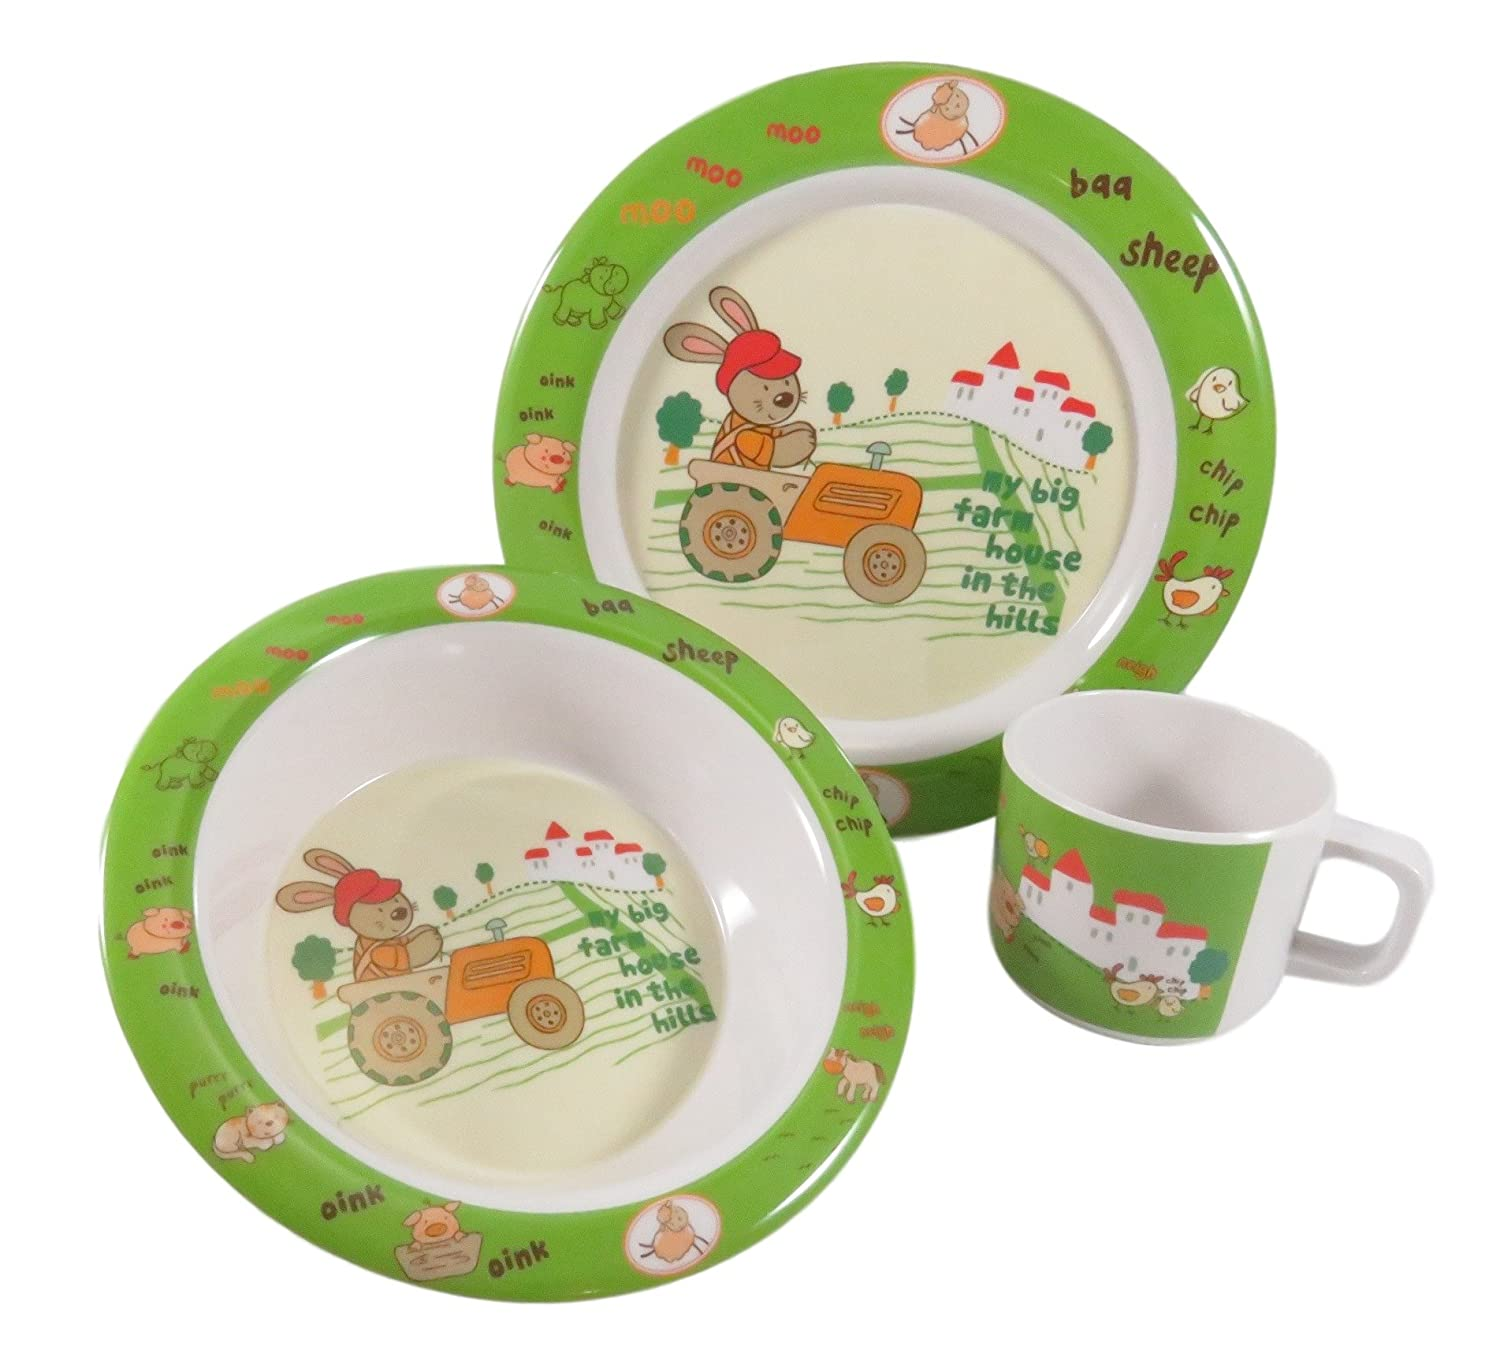 Dishes Collection Here Baby Cartoon Animals Feeders Children Food Plate Dishes Tableware Dining Table Food Plate Baby Feeding Supplies Mother & Kids